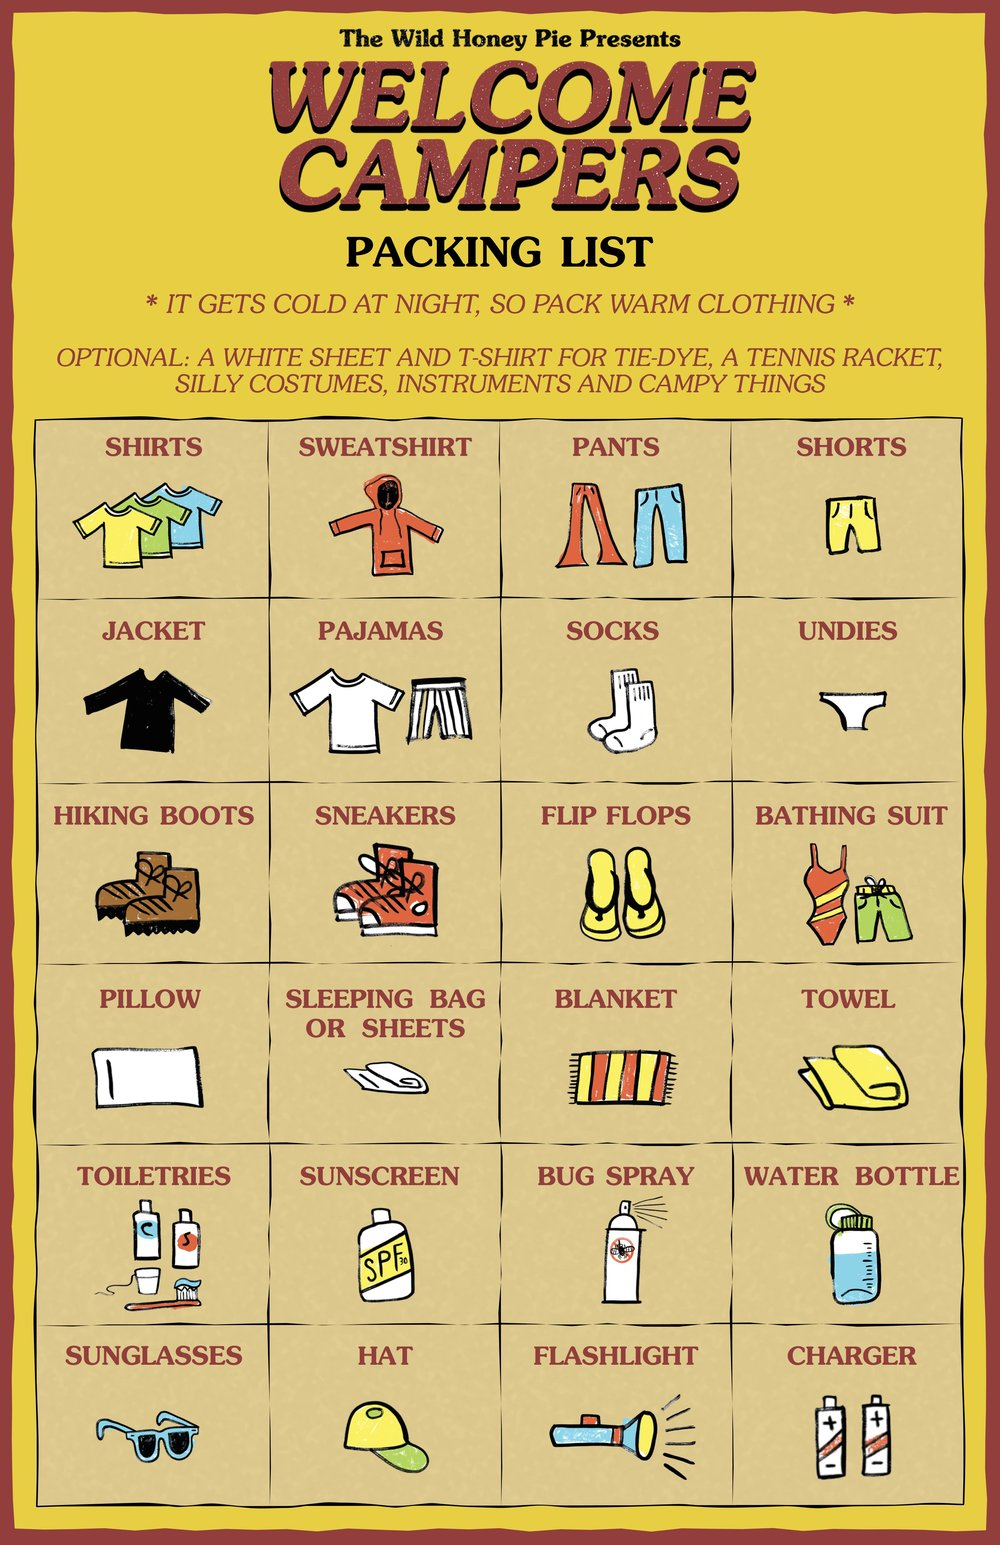 Packing List Welcome Campers – Packing List